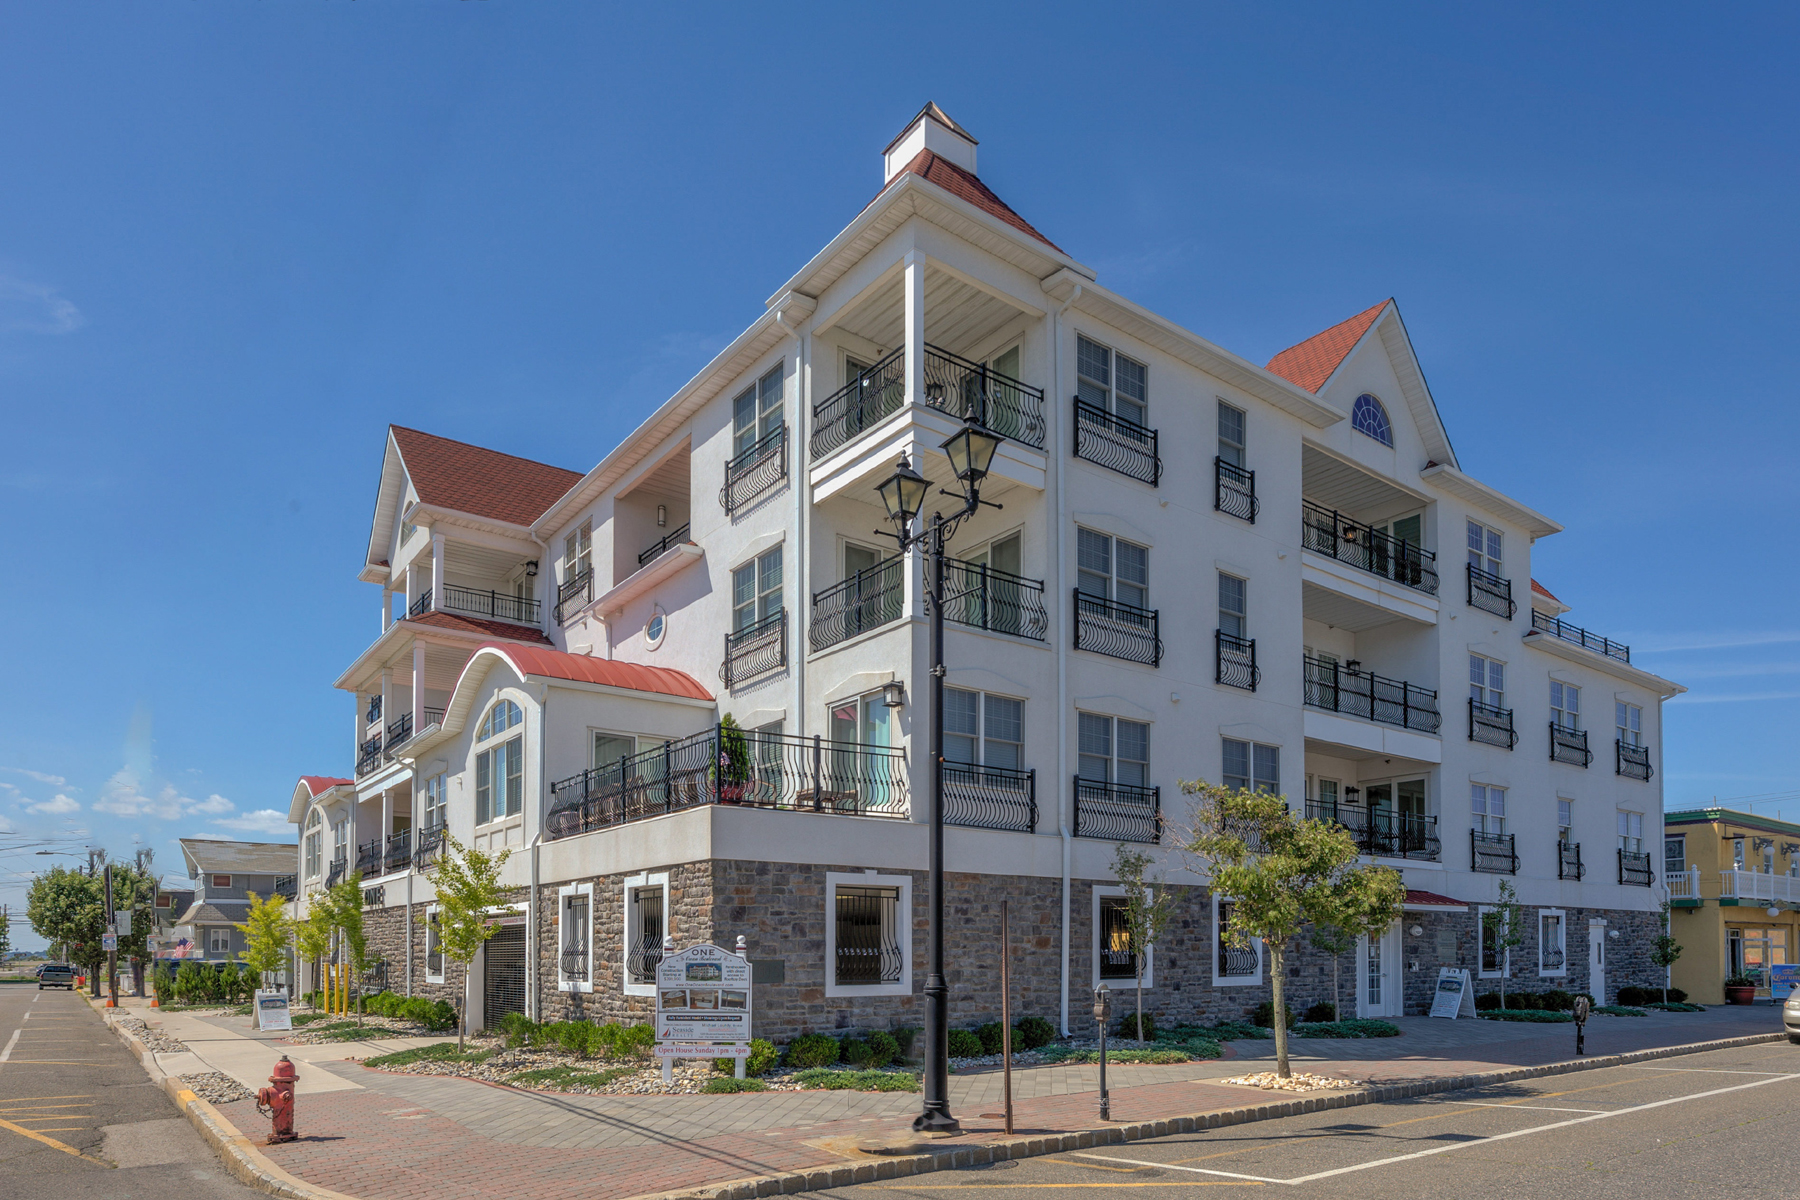 Кондоминиум для того Продажа на Ocean Block Mediterranean Style Complex 1 Boulevard, Unit O, Seaside Heights, Нью-Джерси 08751 Соединенные Штаты